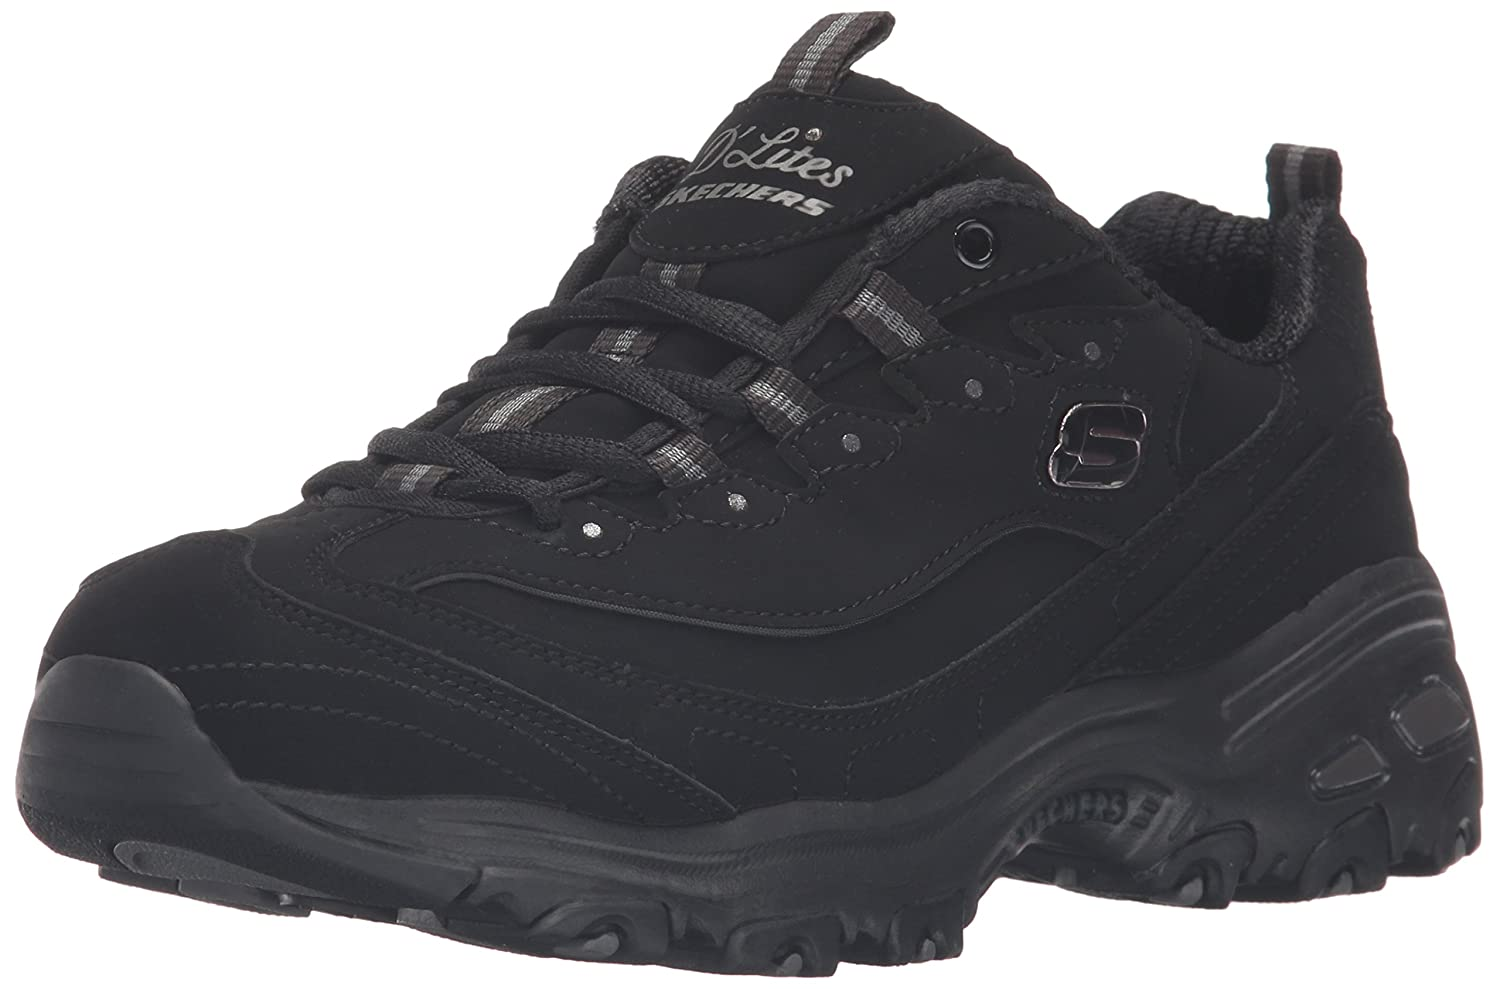 Skechers Women's D'Lites Memory Foam Lace-up Sneaker B01ESD66SE 5.5 B(M) US|Black/Black